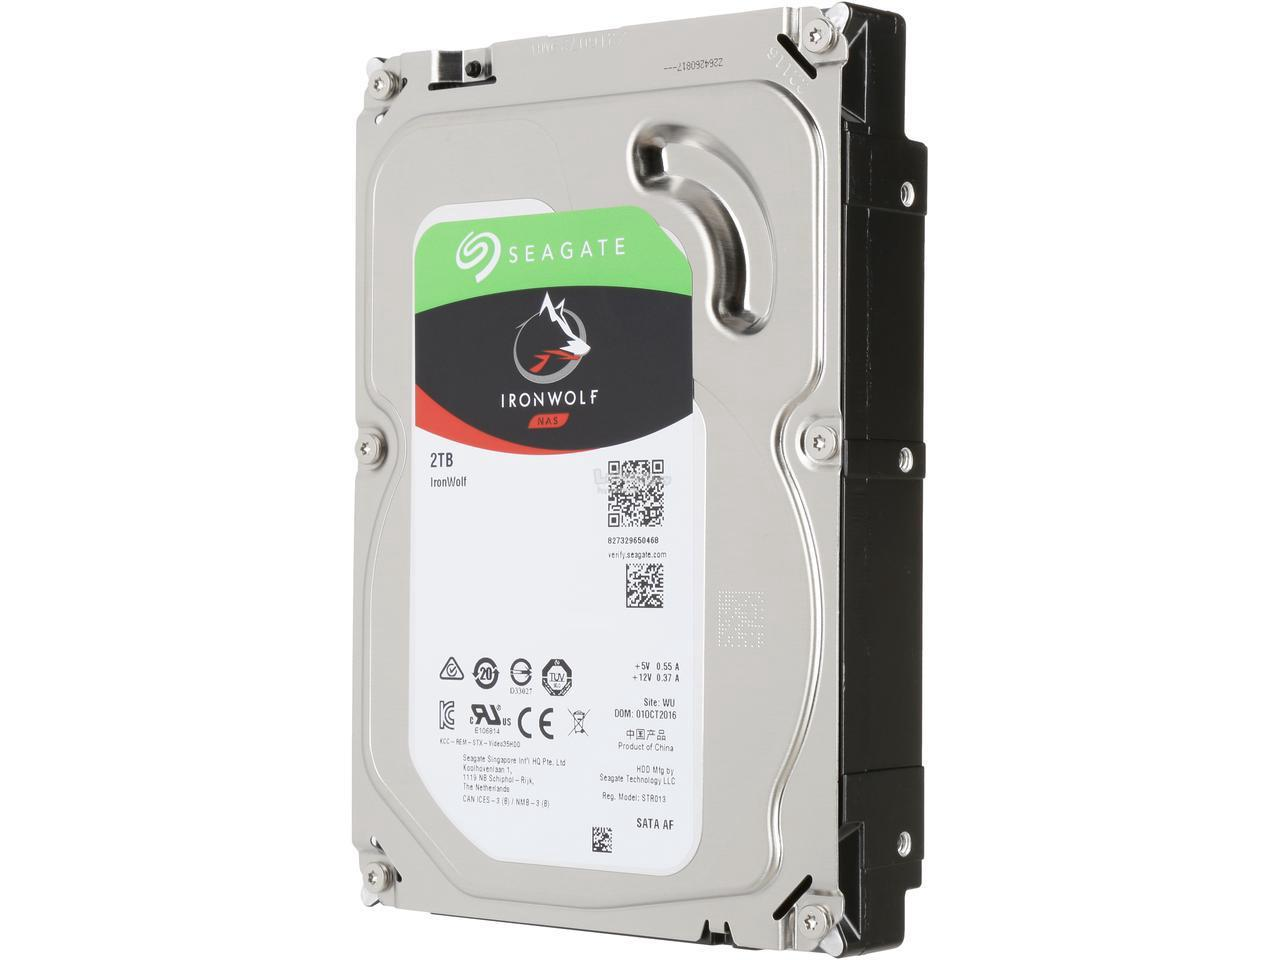 2TB Int IronWolf SATA 3.5